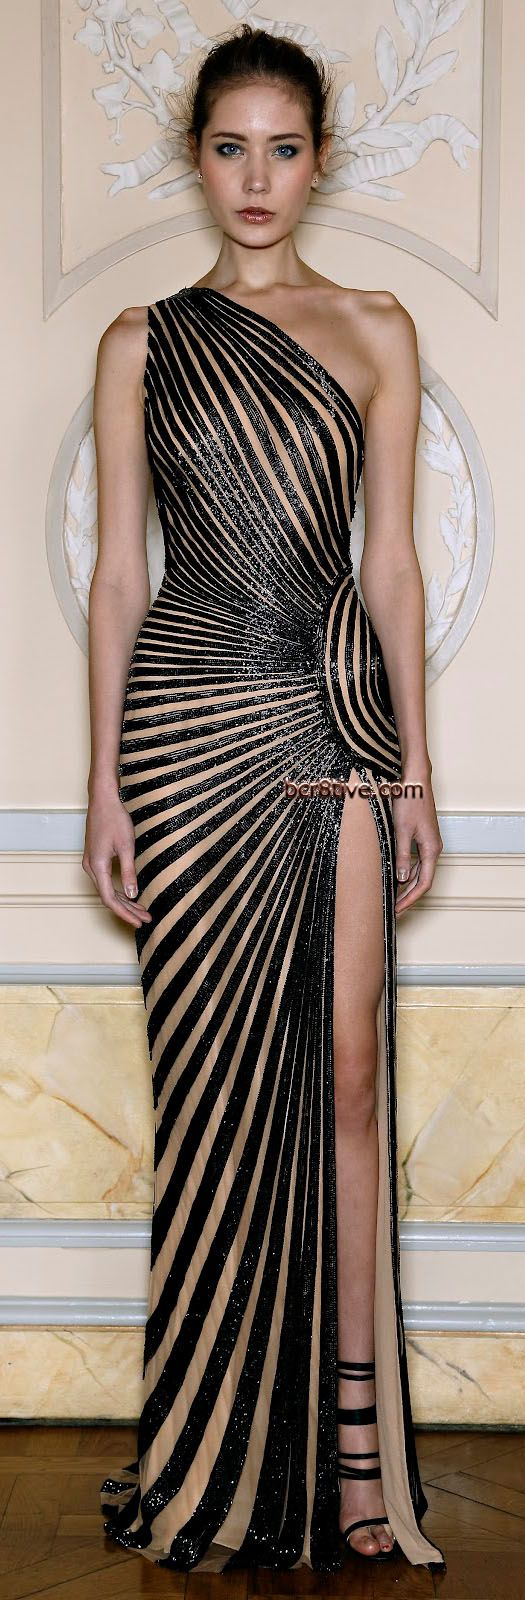 Zuhair Murad Spring Summer 2013 Ready to Wear Collection Construction & fit. Amazing.